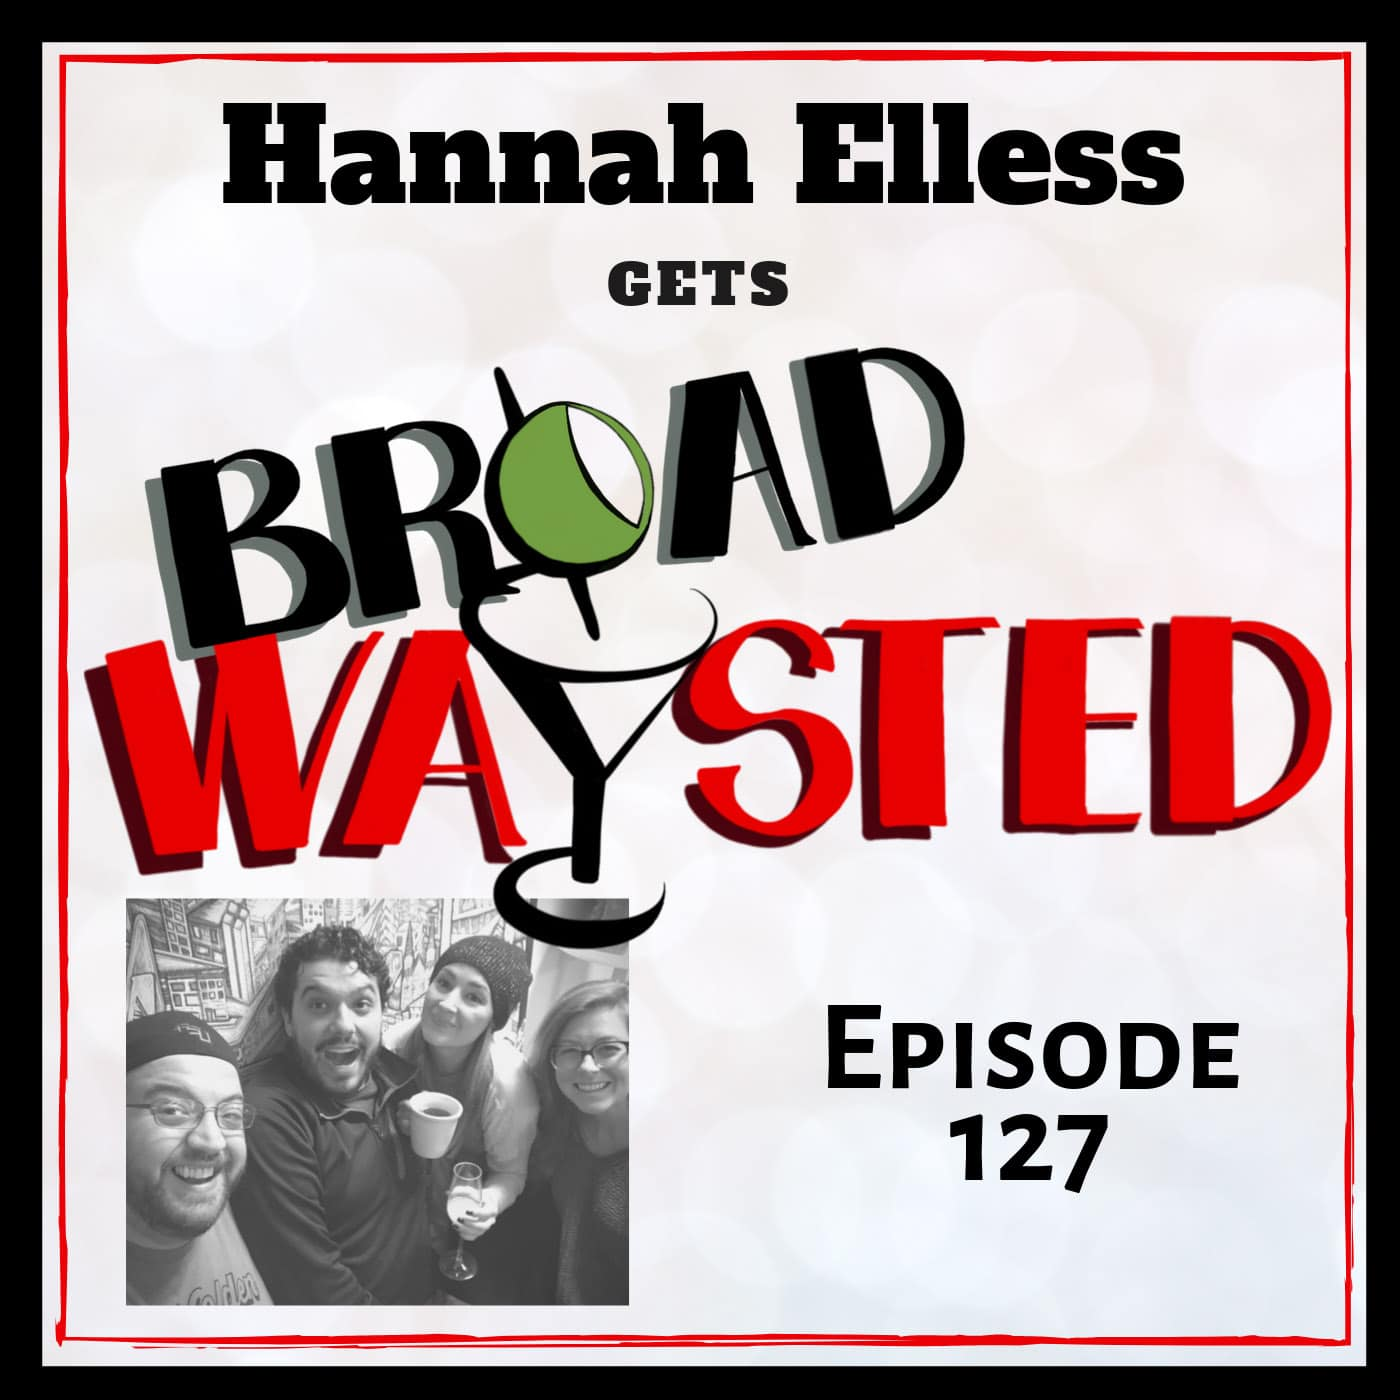 Broadwaysted Ep 127 Hannah Elless